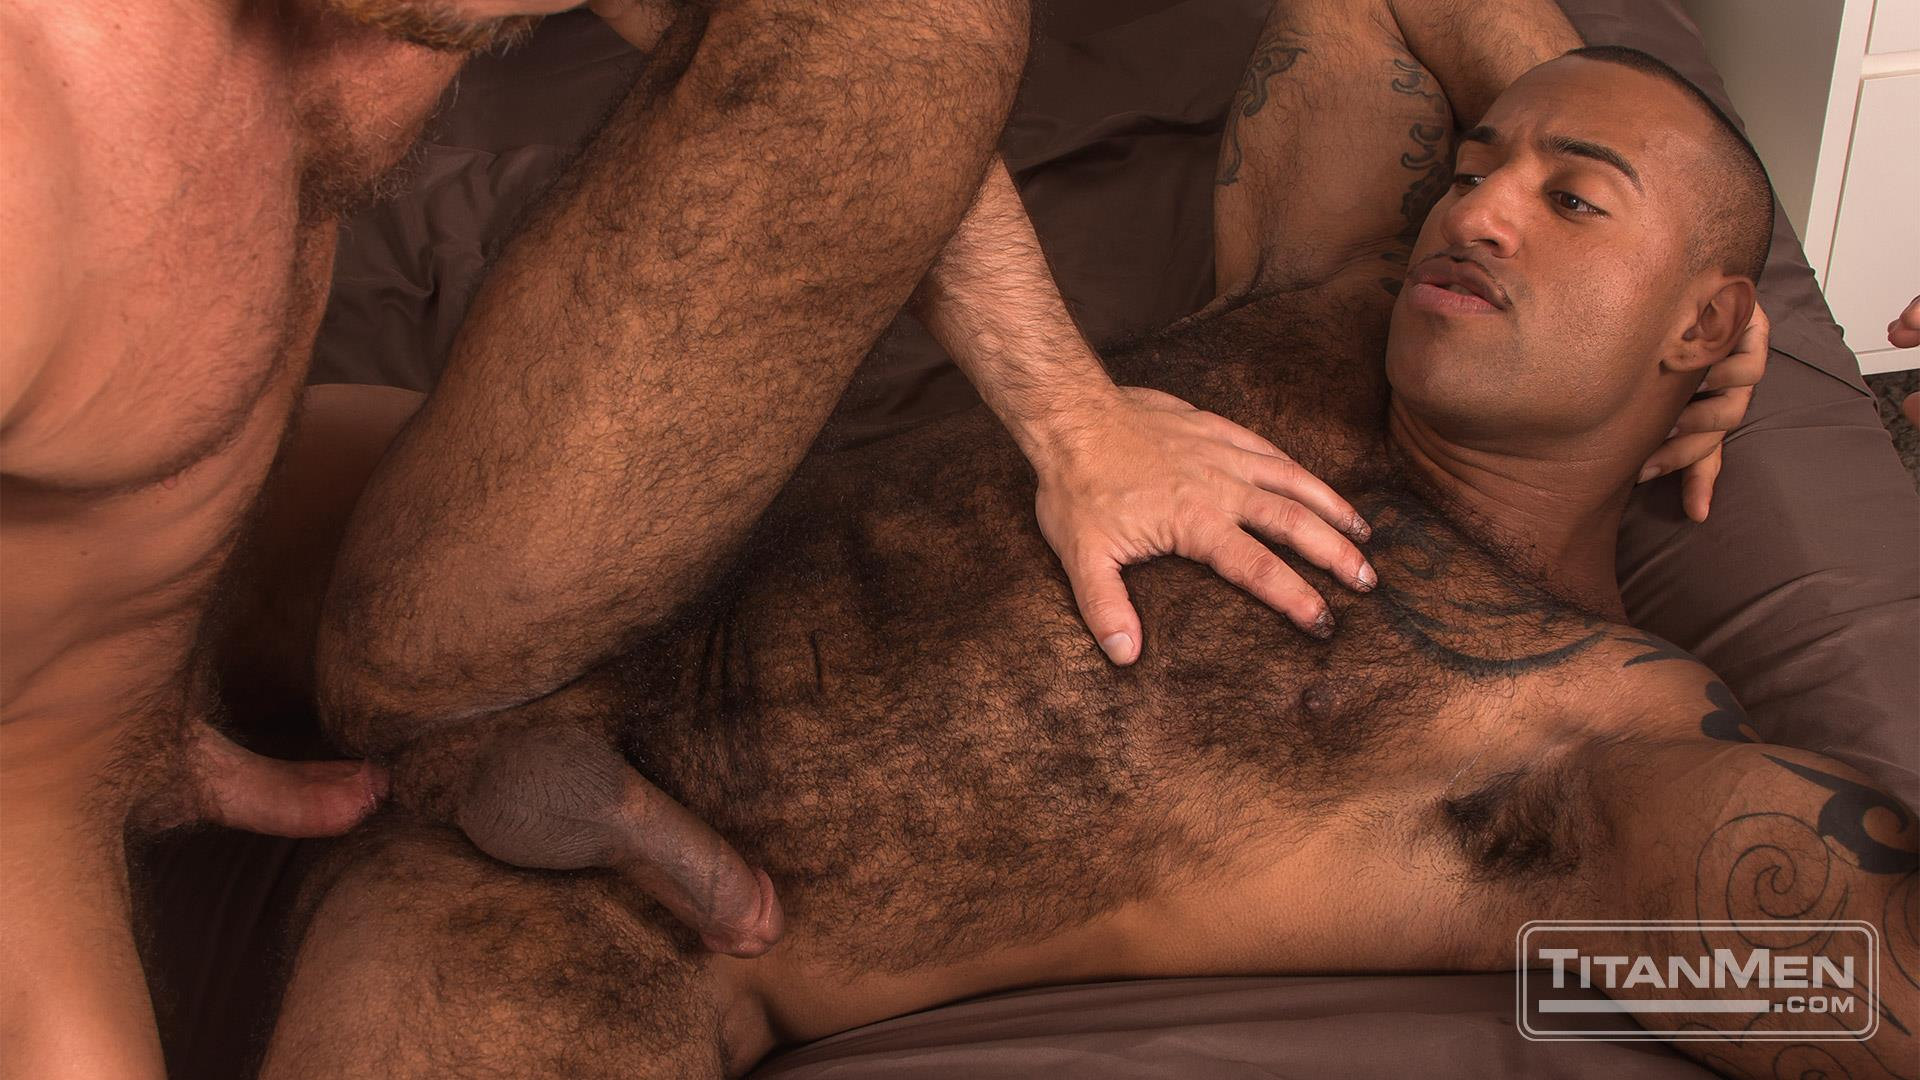 Titan-Men-Dirk-Caber-and-Daymin-Voss-Hairy-Muscle-Daddy-and-Big-Black-Dick-Fucking-50 Hairy Muscle Daddy Dirk Caber Flip Fucking With Hairy Black Muscle Hunk Daymin Voss